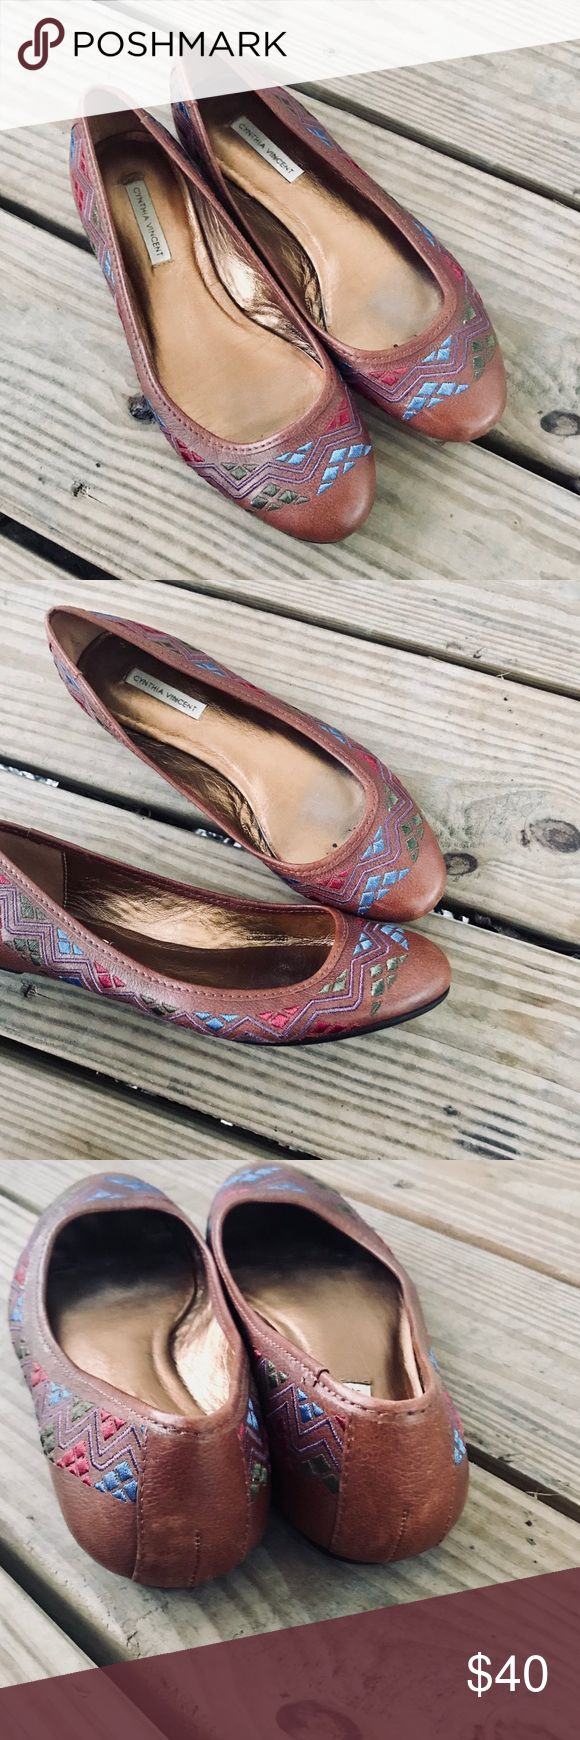 Cynthia Vincent Aztec Flats!! Cognac brown with multicolor stitch Aztec print. Gently used!! Cynthia Vincent Shoes Flats & Loafers